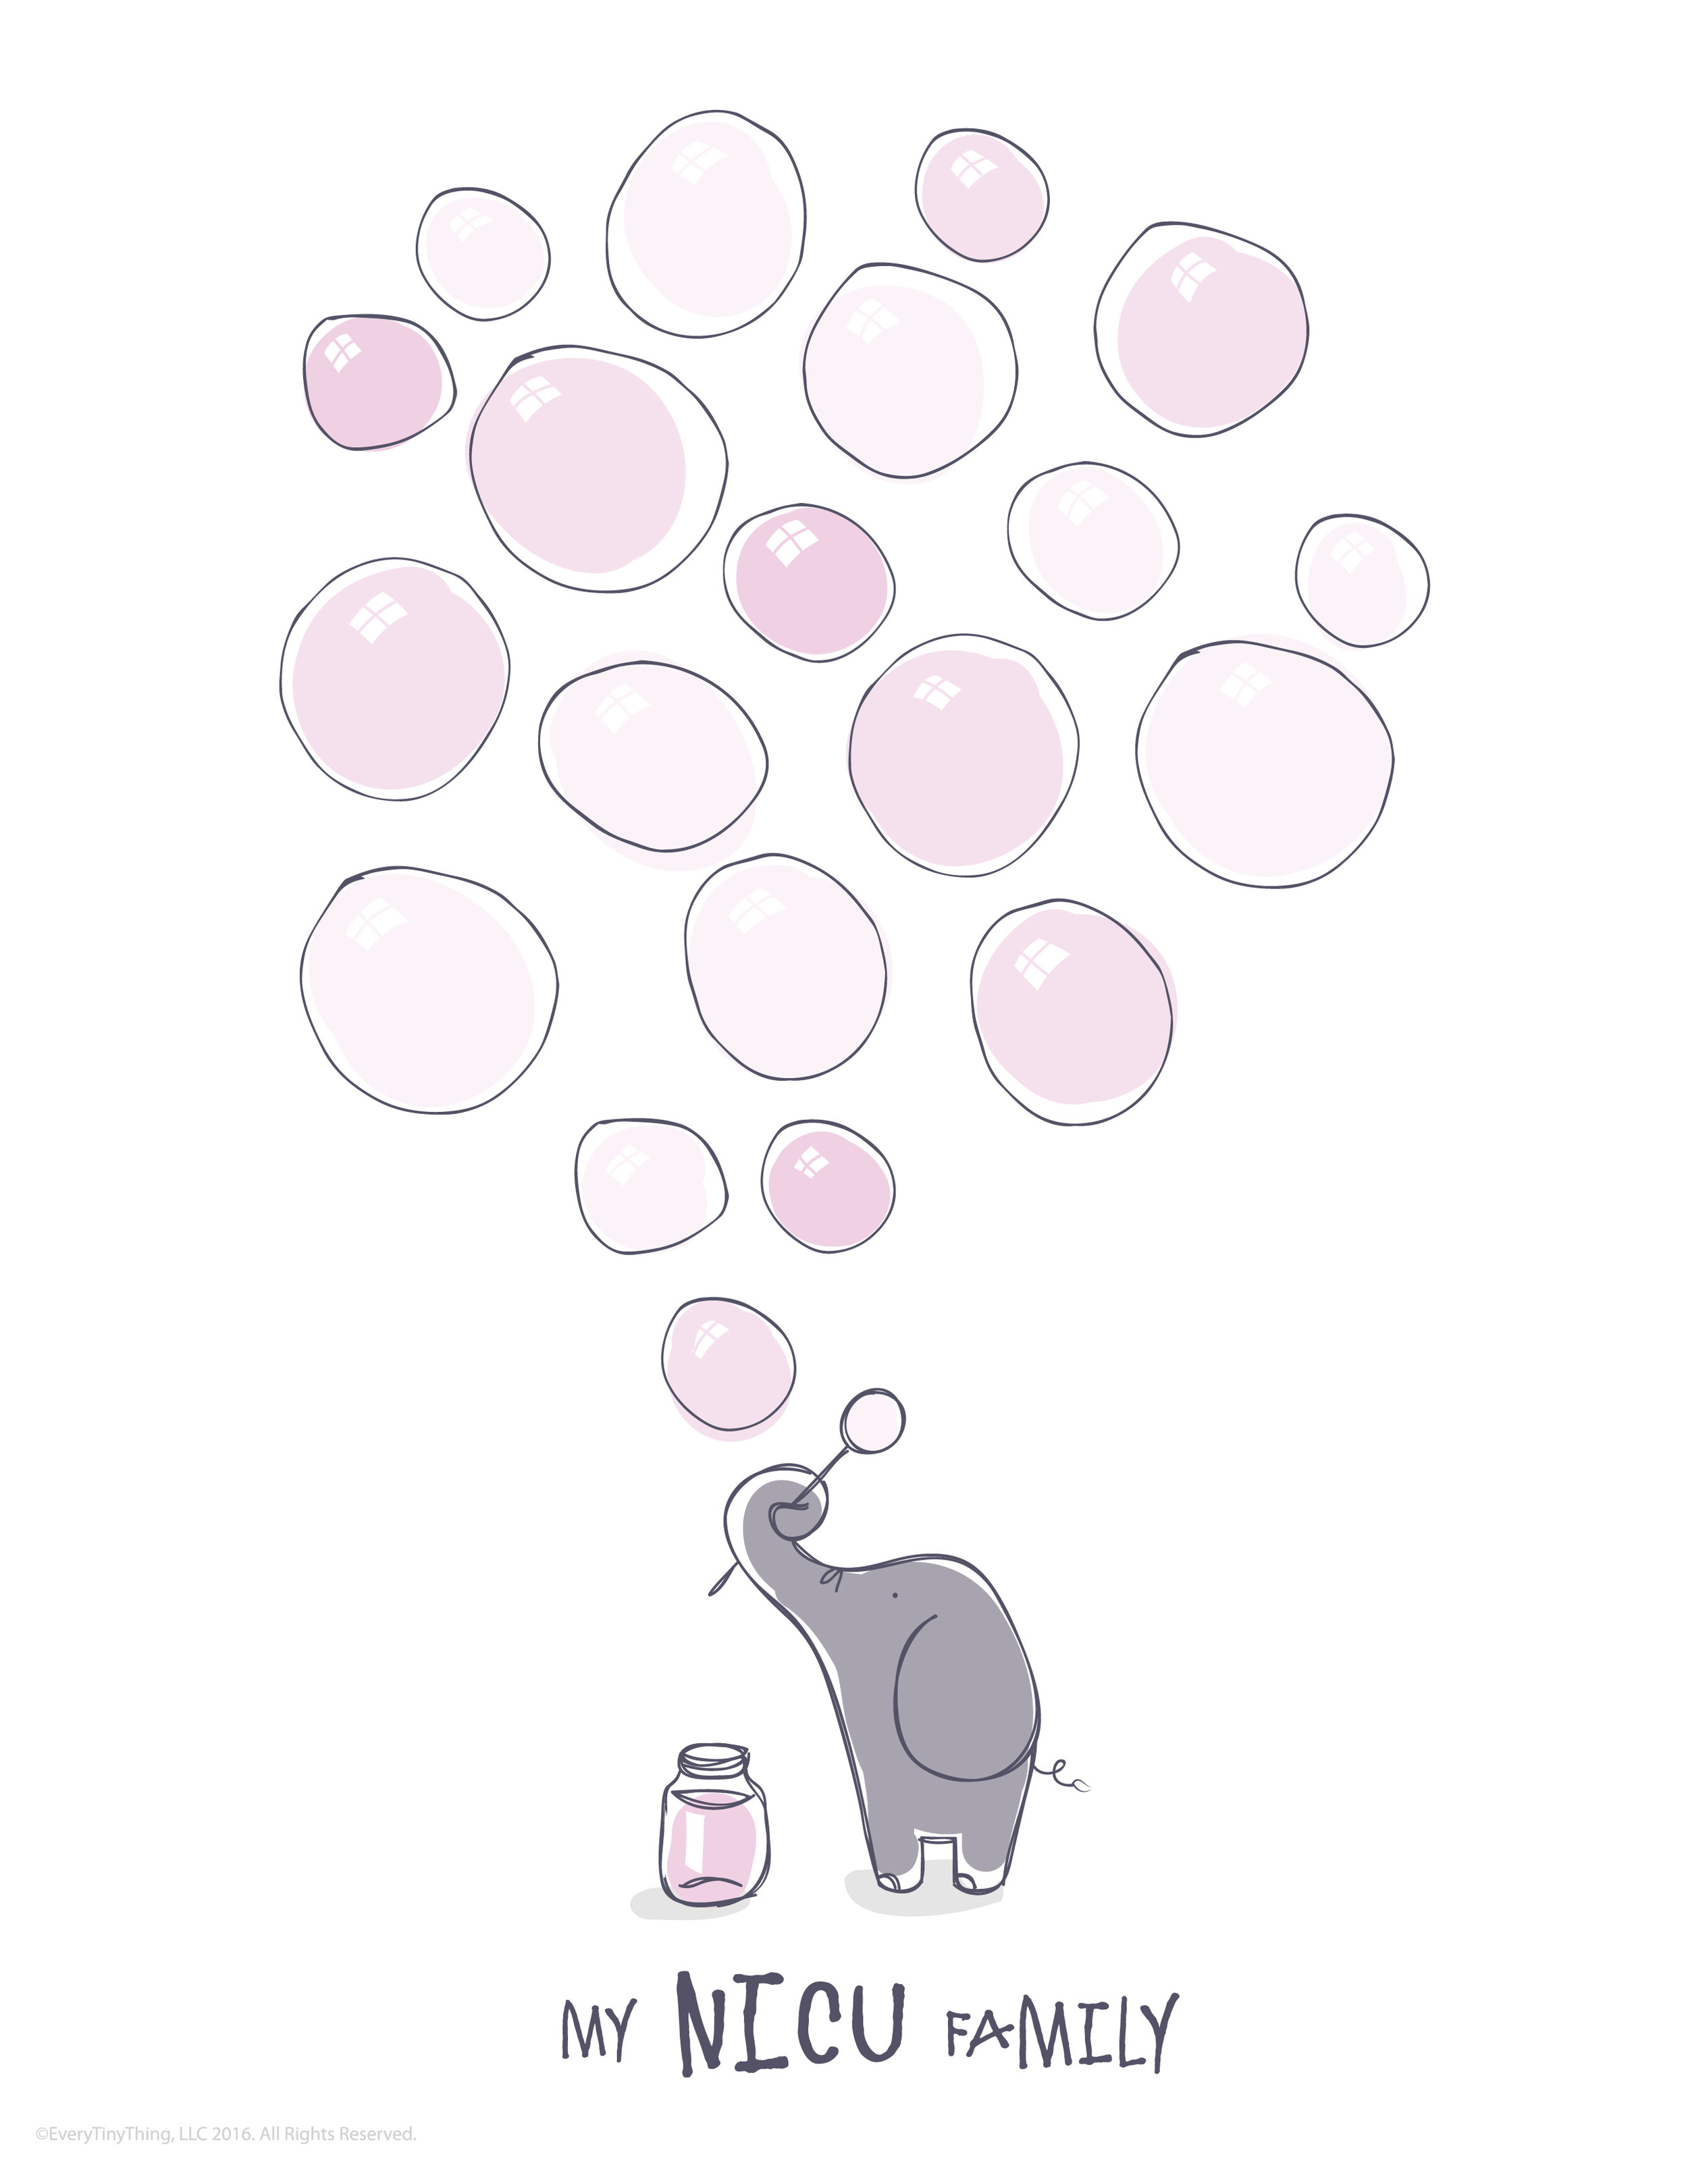 Poster - Bubbles - My - Pink - 8x11 - RGB for web or digital print.jpg